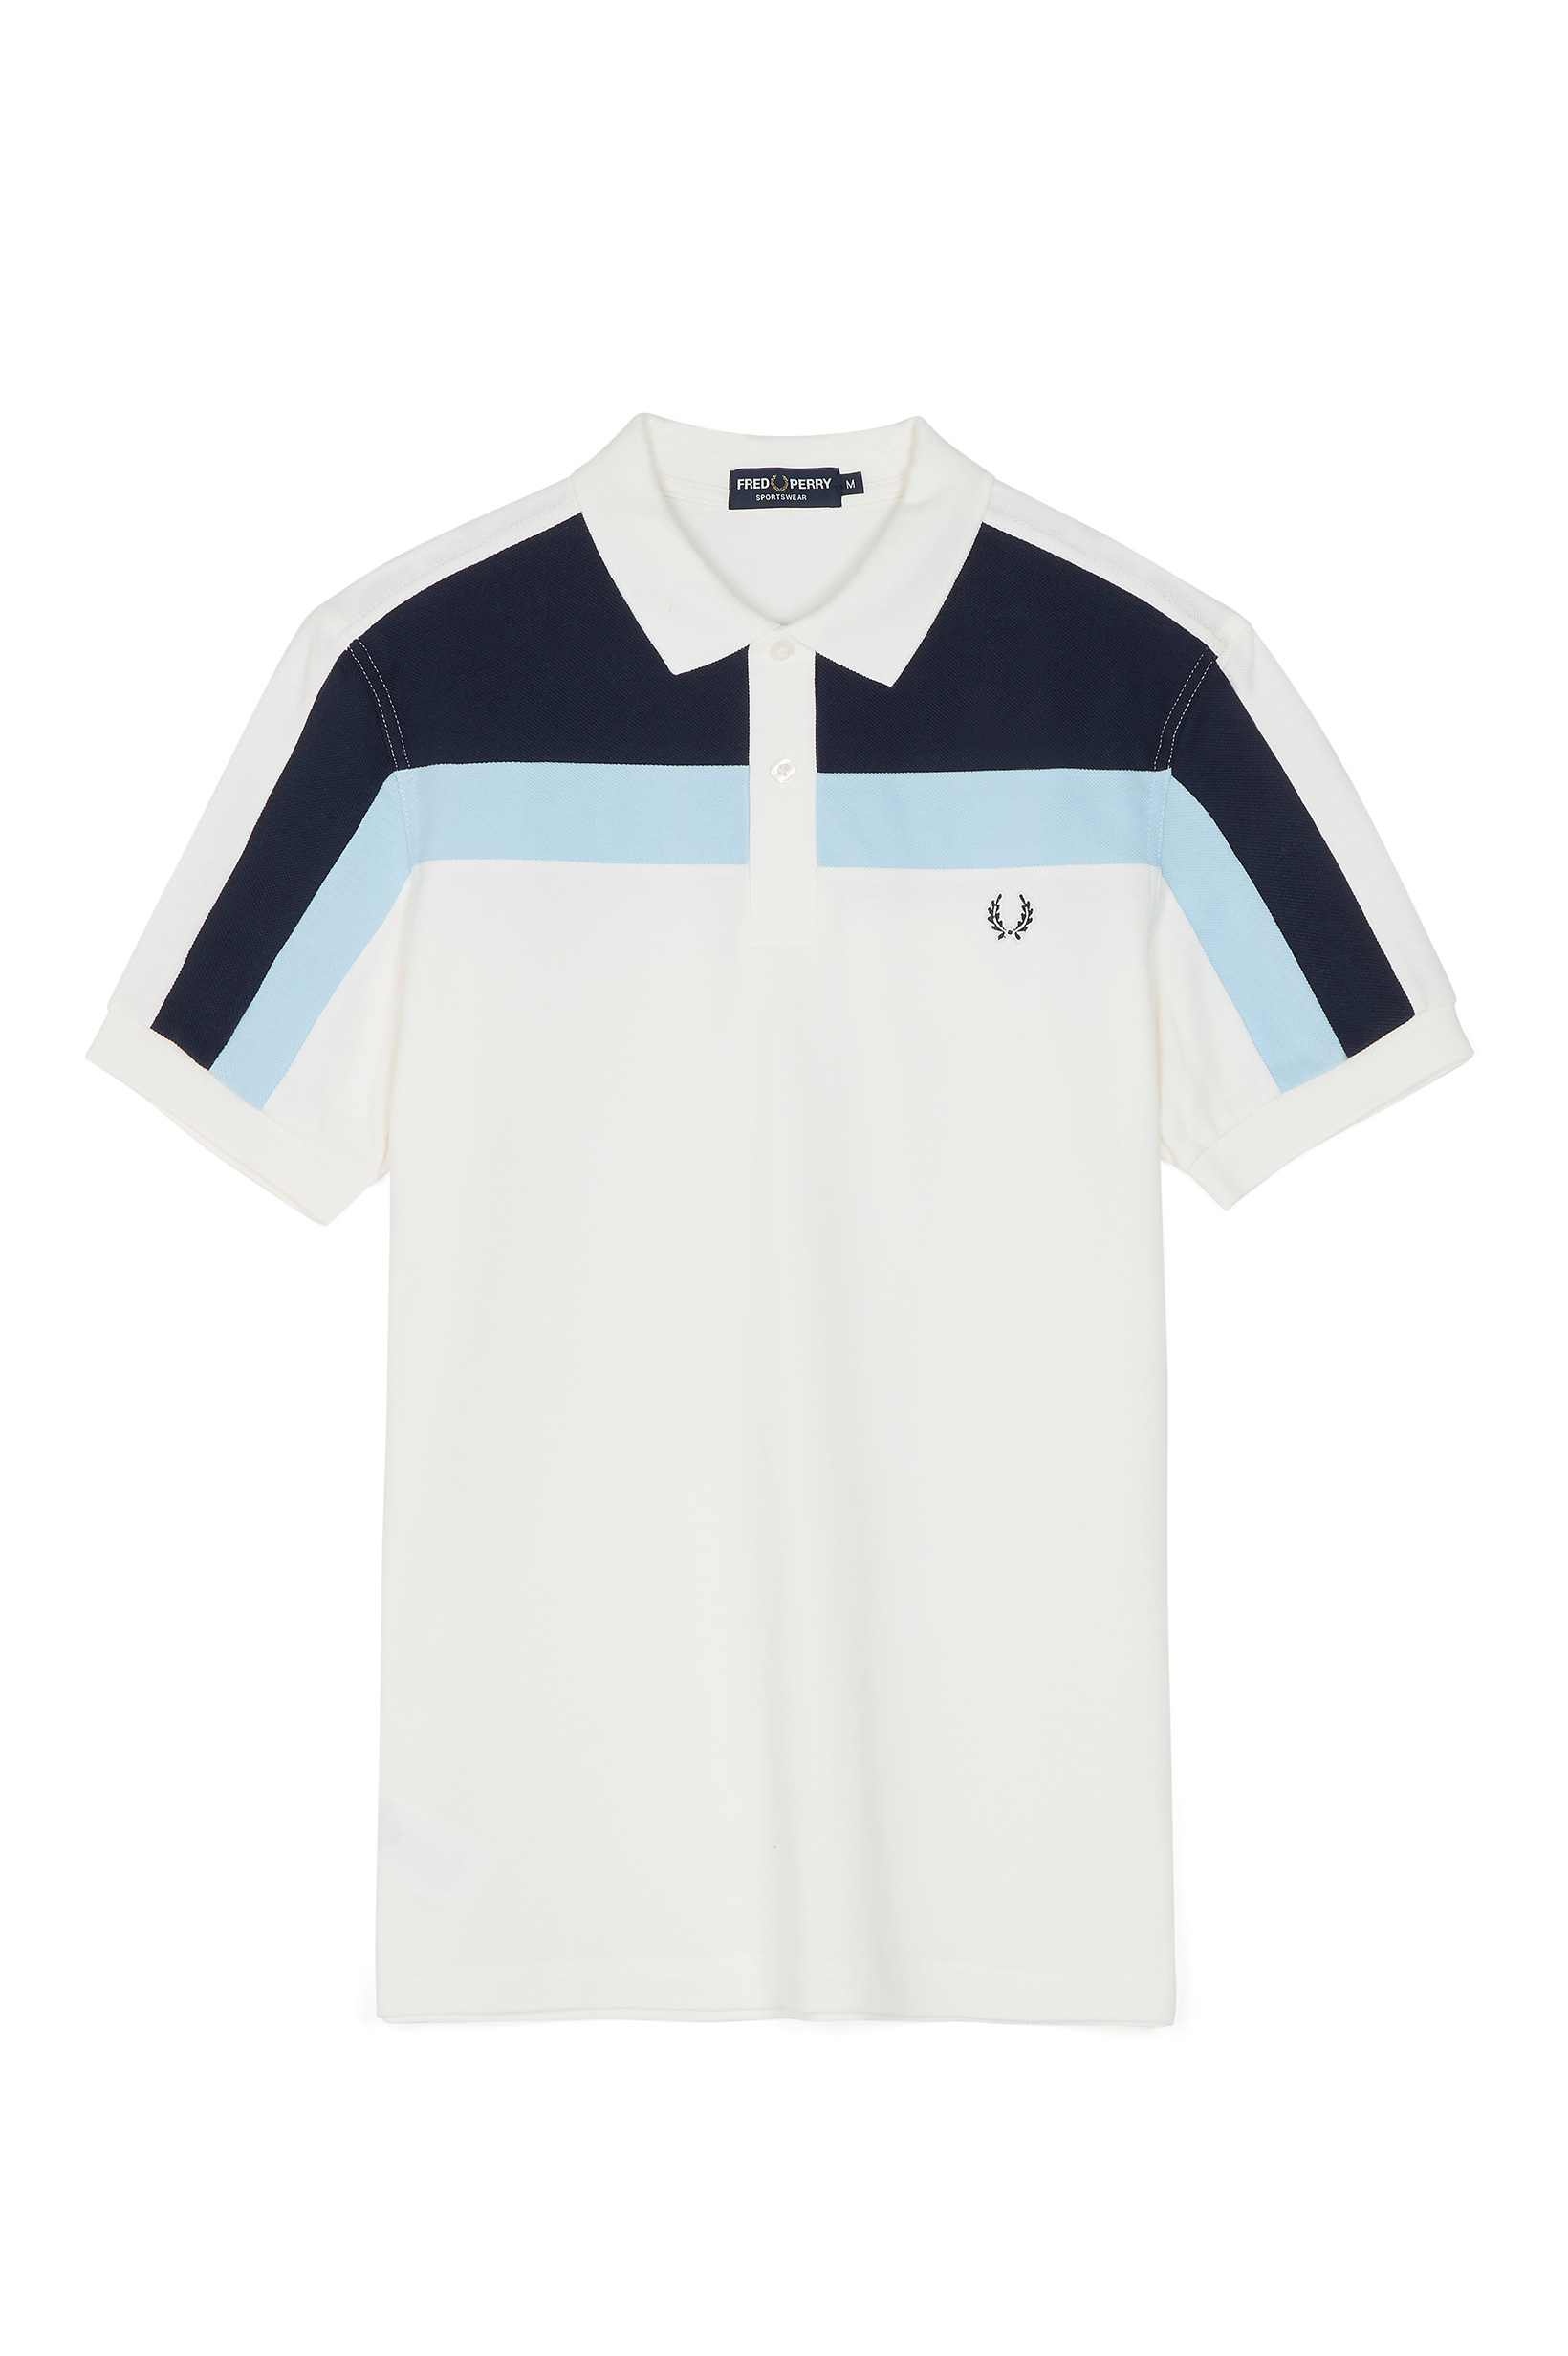 fredperry603_303_3